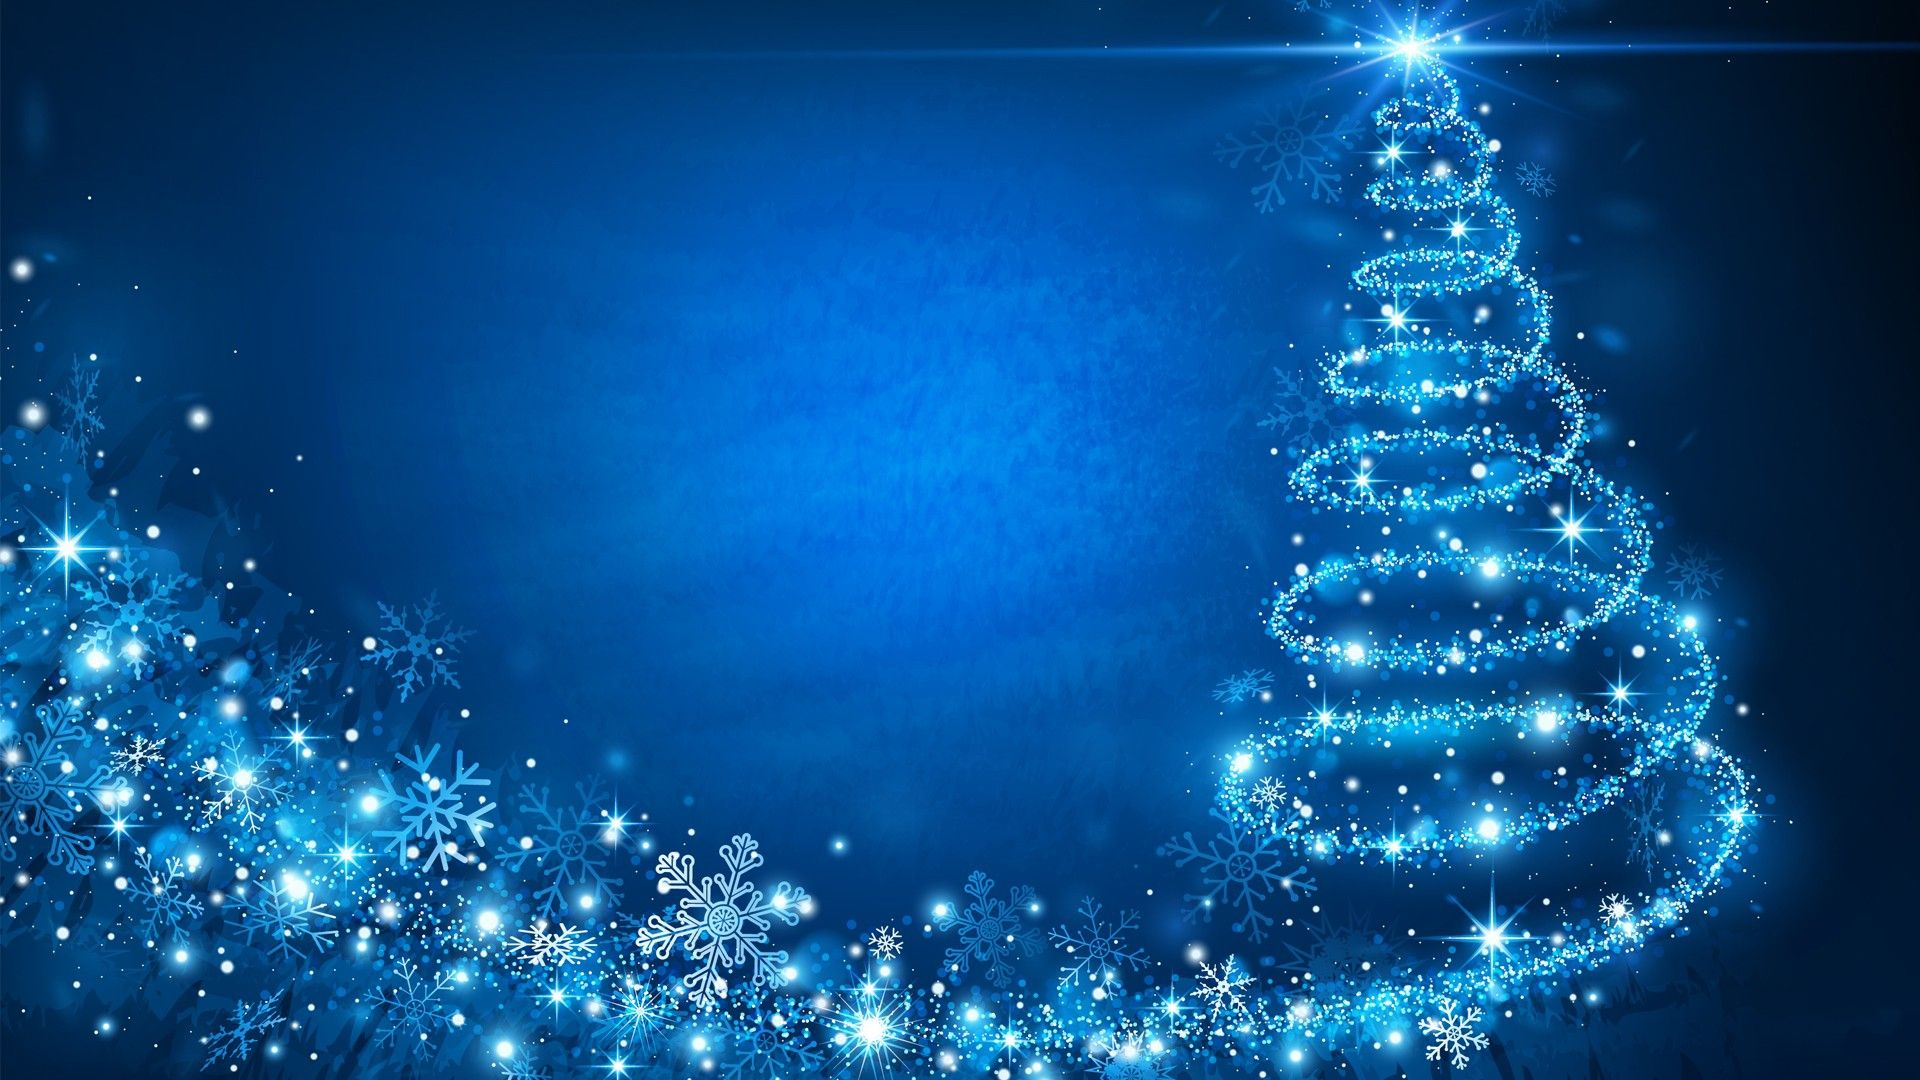 Pin By Oao Radiovolna On Novogodnie Christmas Wallpaper Hd Christmas Tree Background Christmas Wallpaper Backgrounds